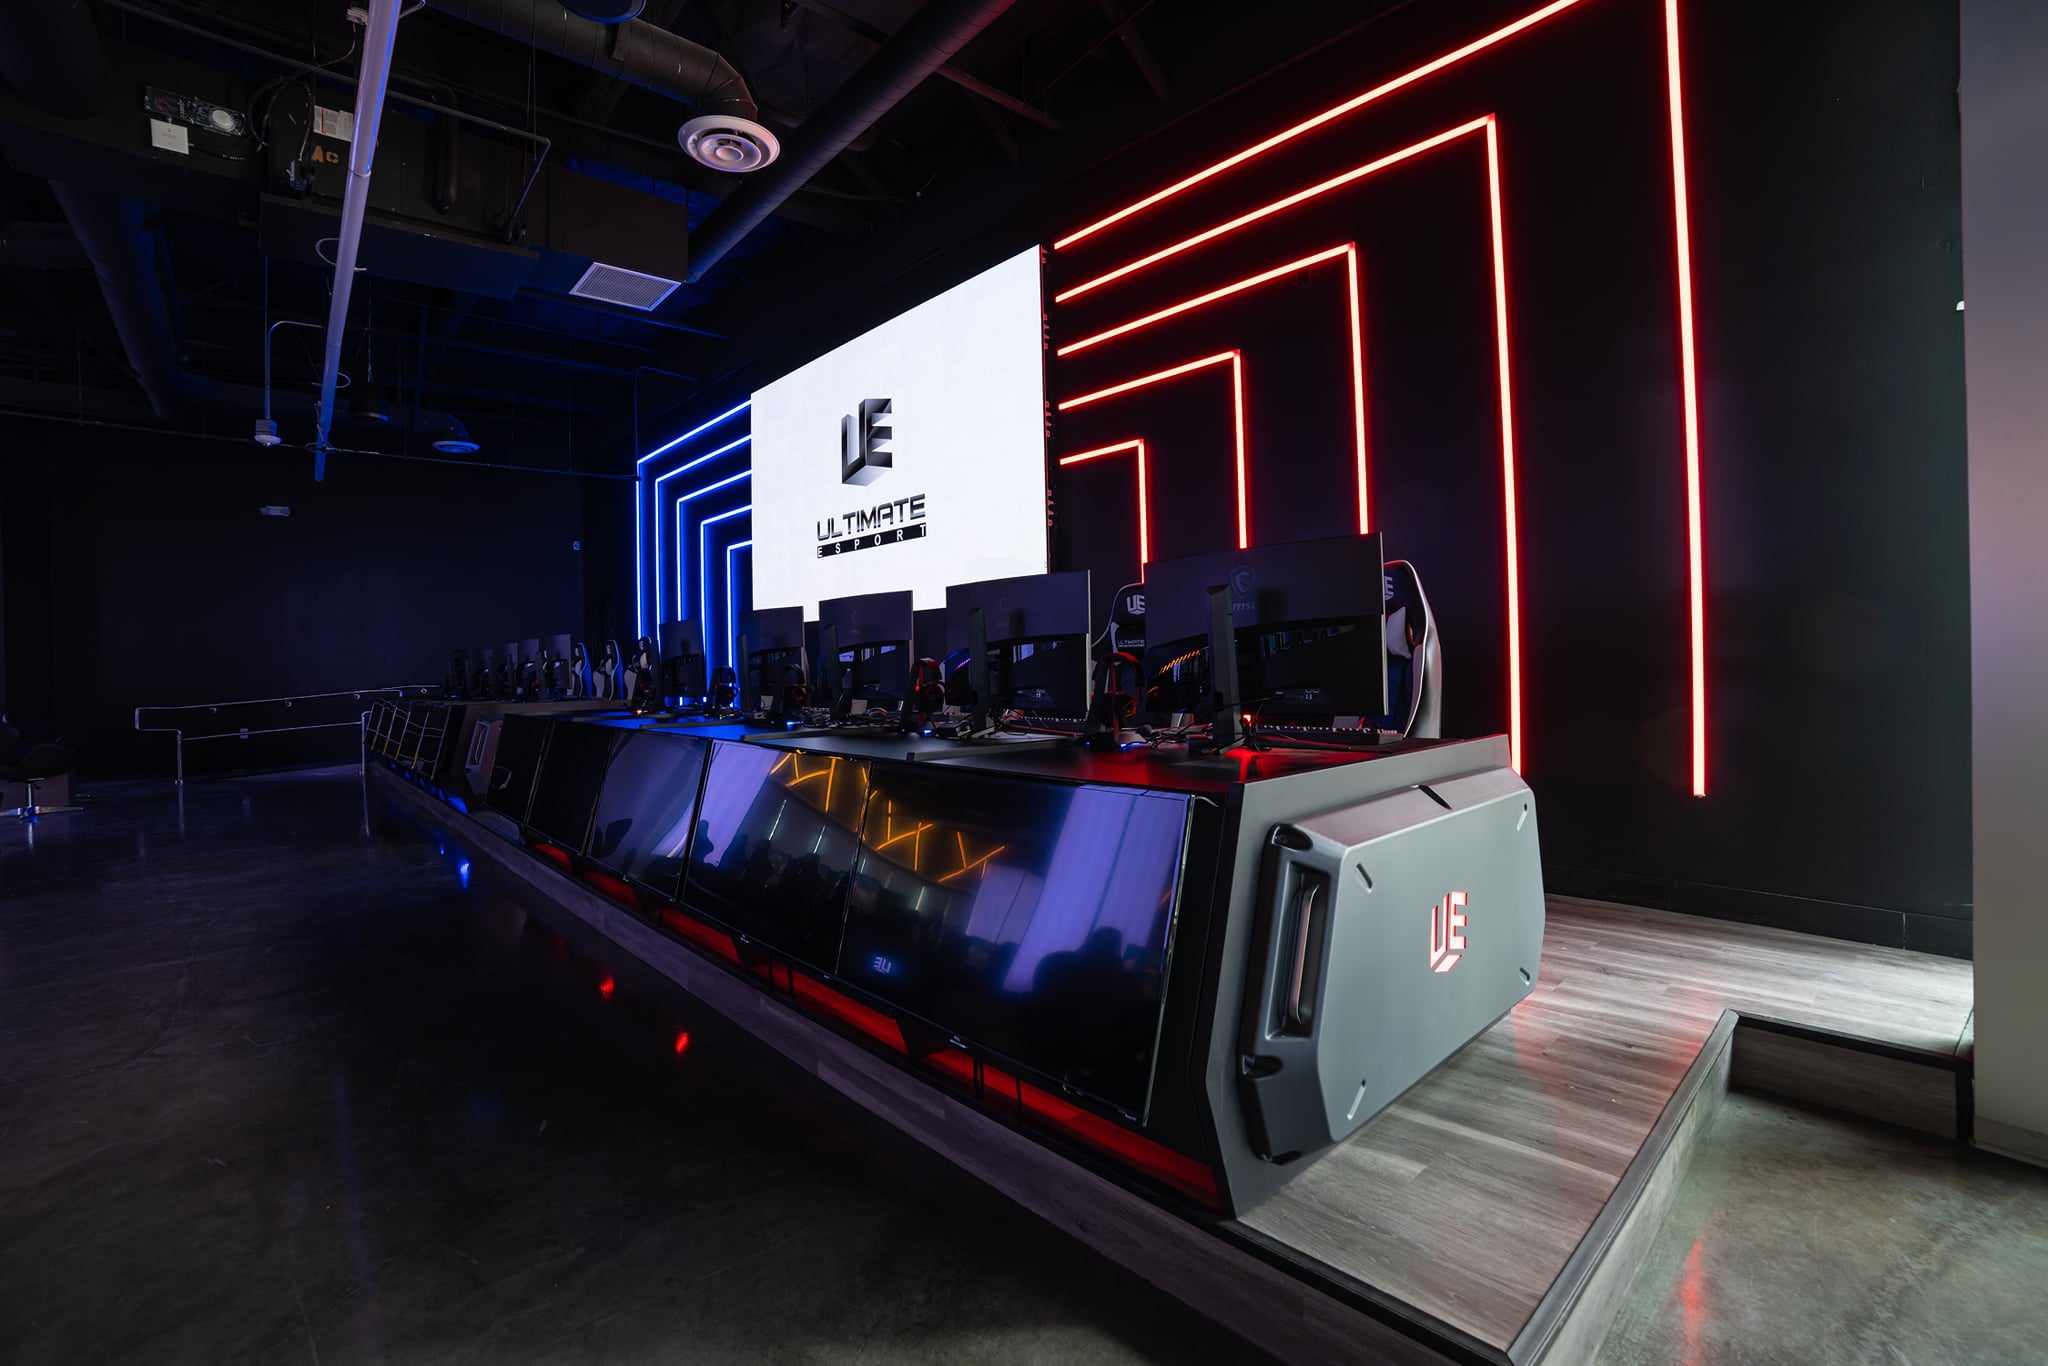 This centers esports arena is perfect for 5v5 professional esports events and competitions